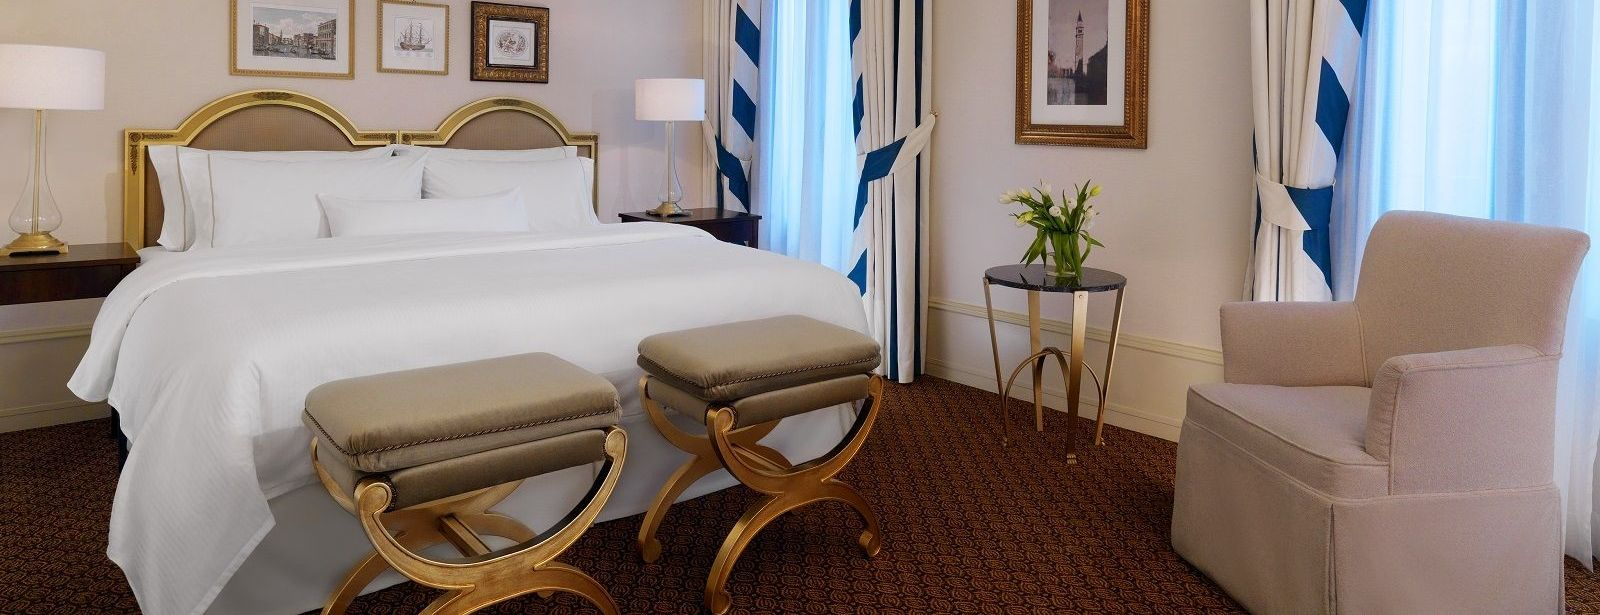 Image of the Deluxe Room at The Westin Europa & Regina, Venice